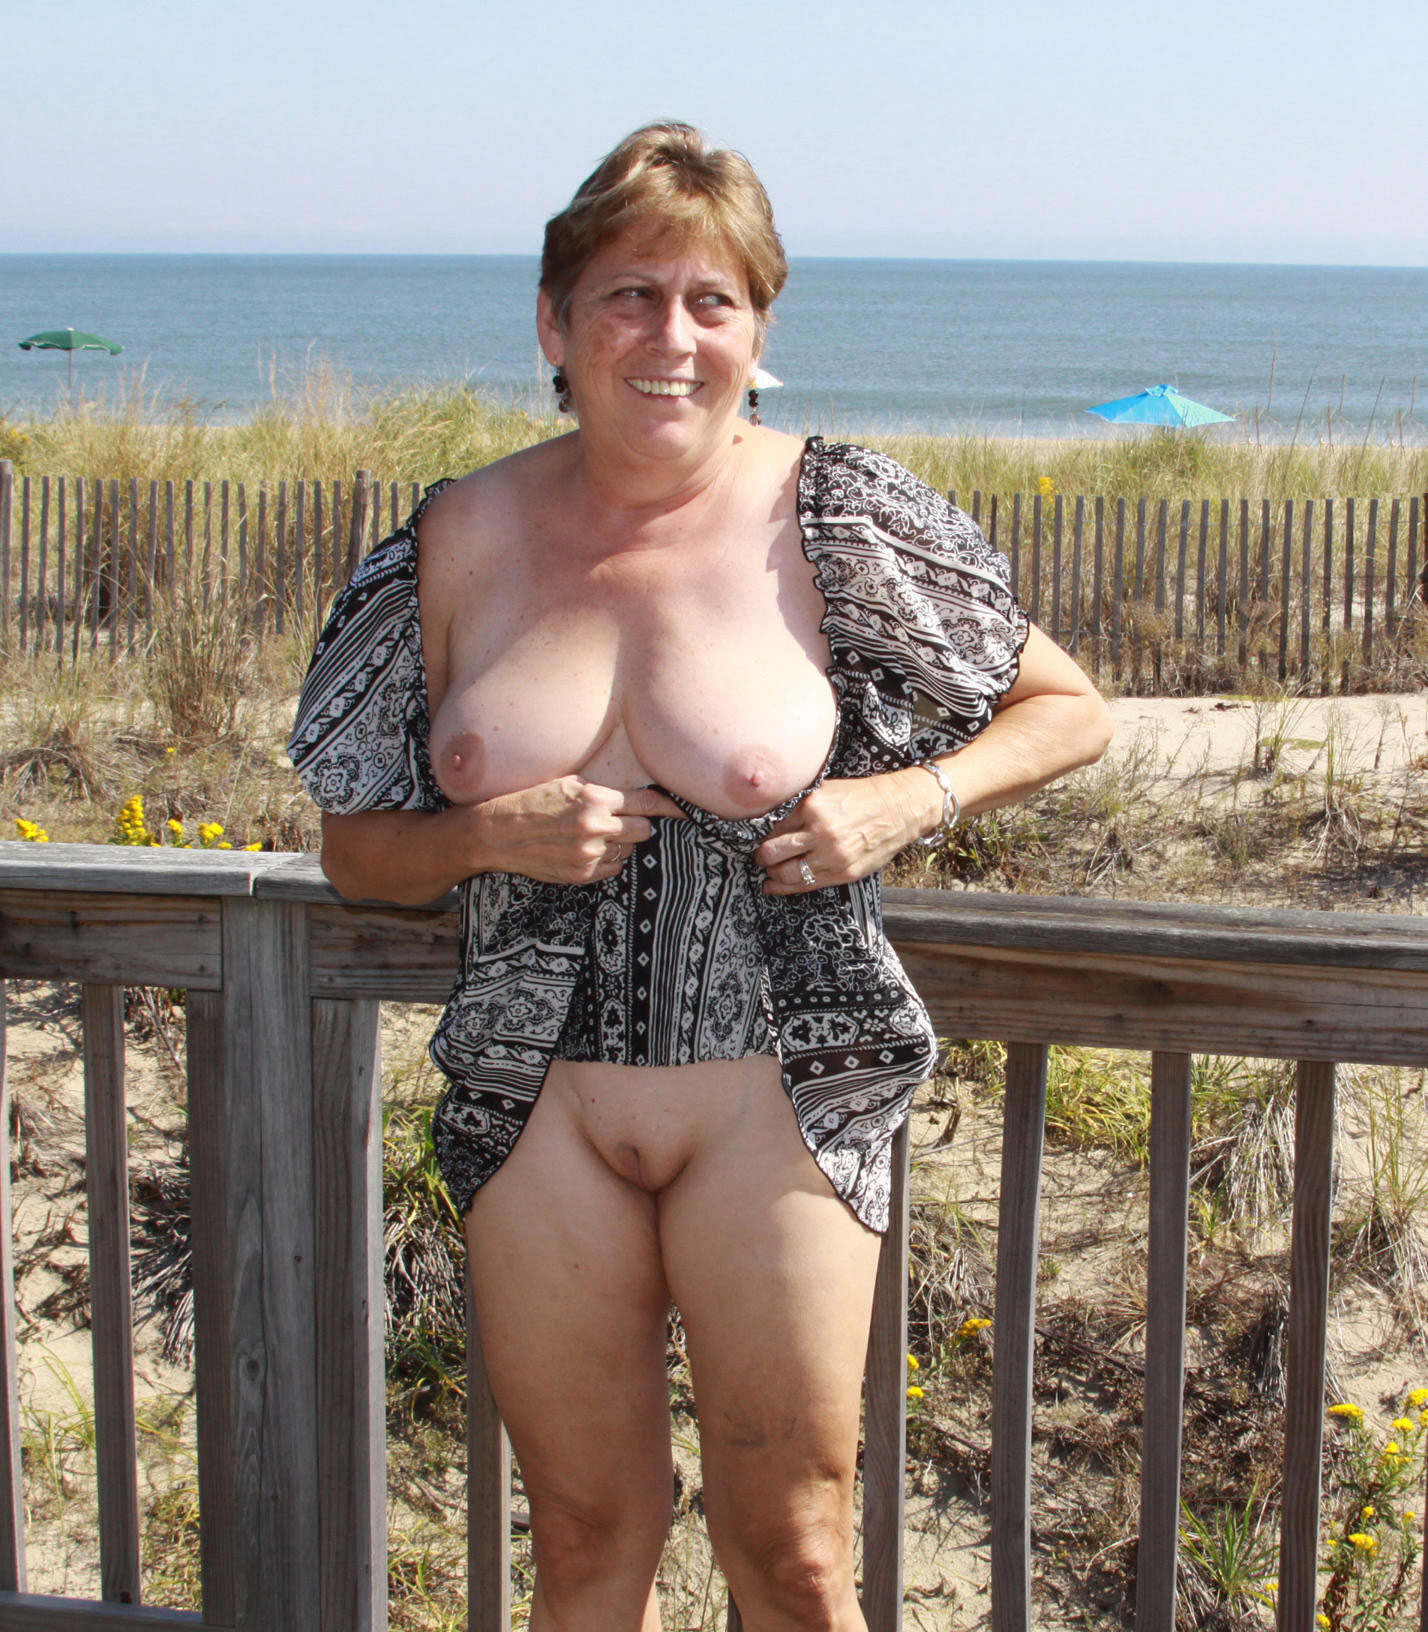 Mature naked woman in public